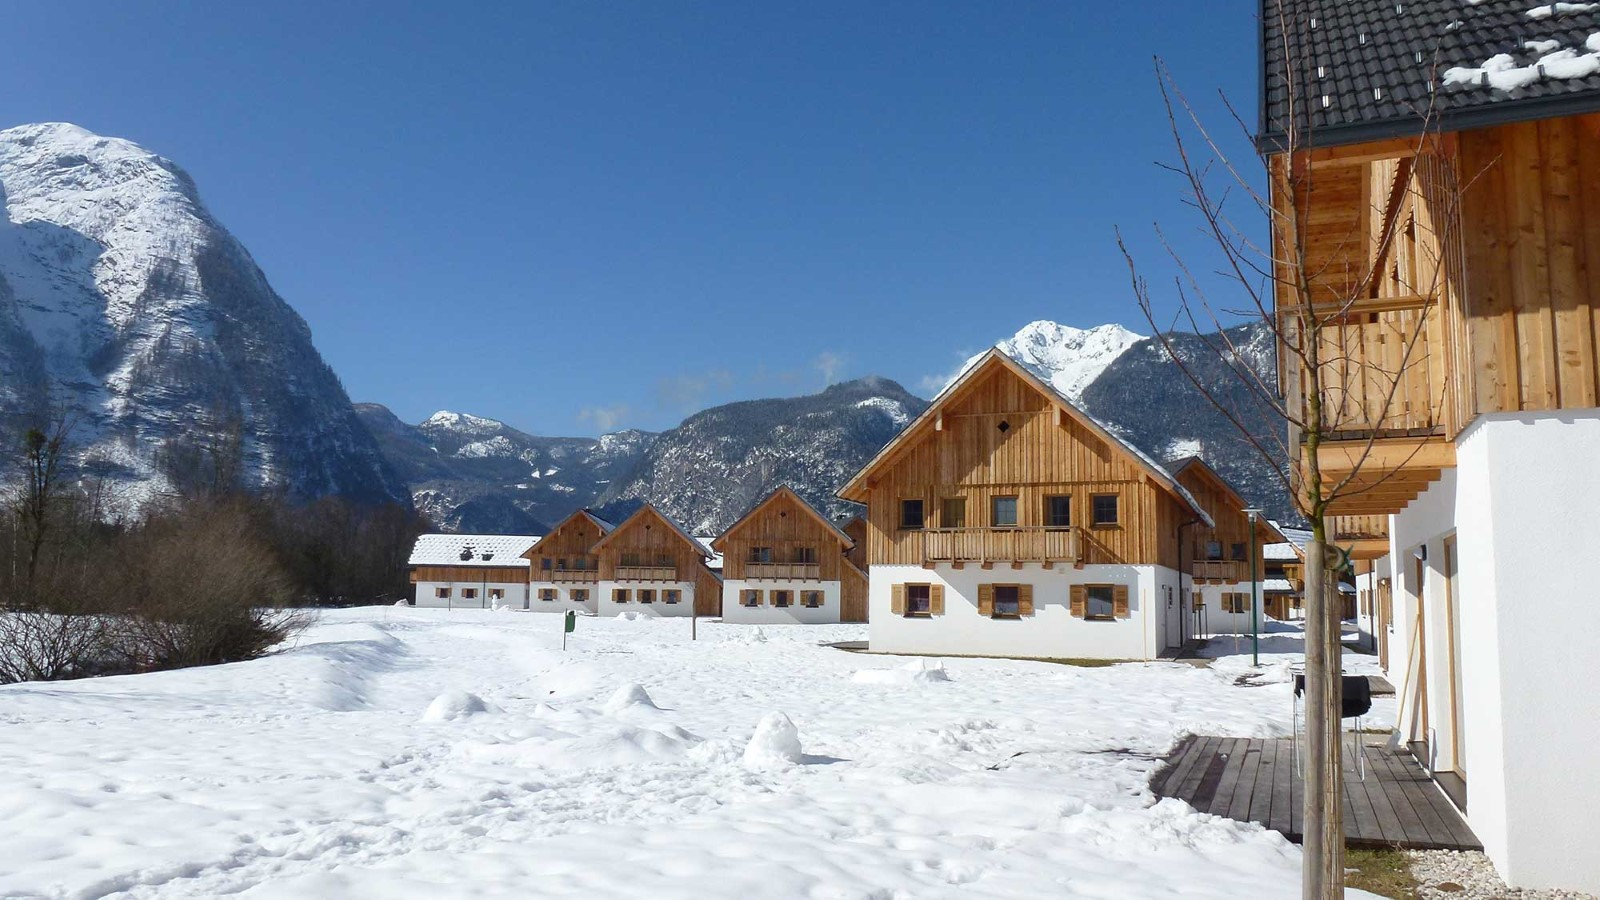 Chalet Traunsee avec sauna - 4 chambres